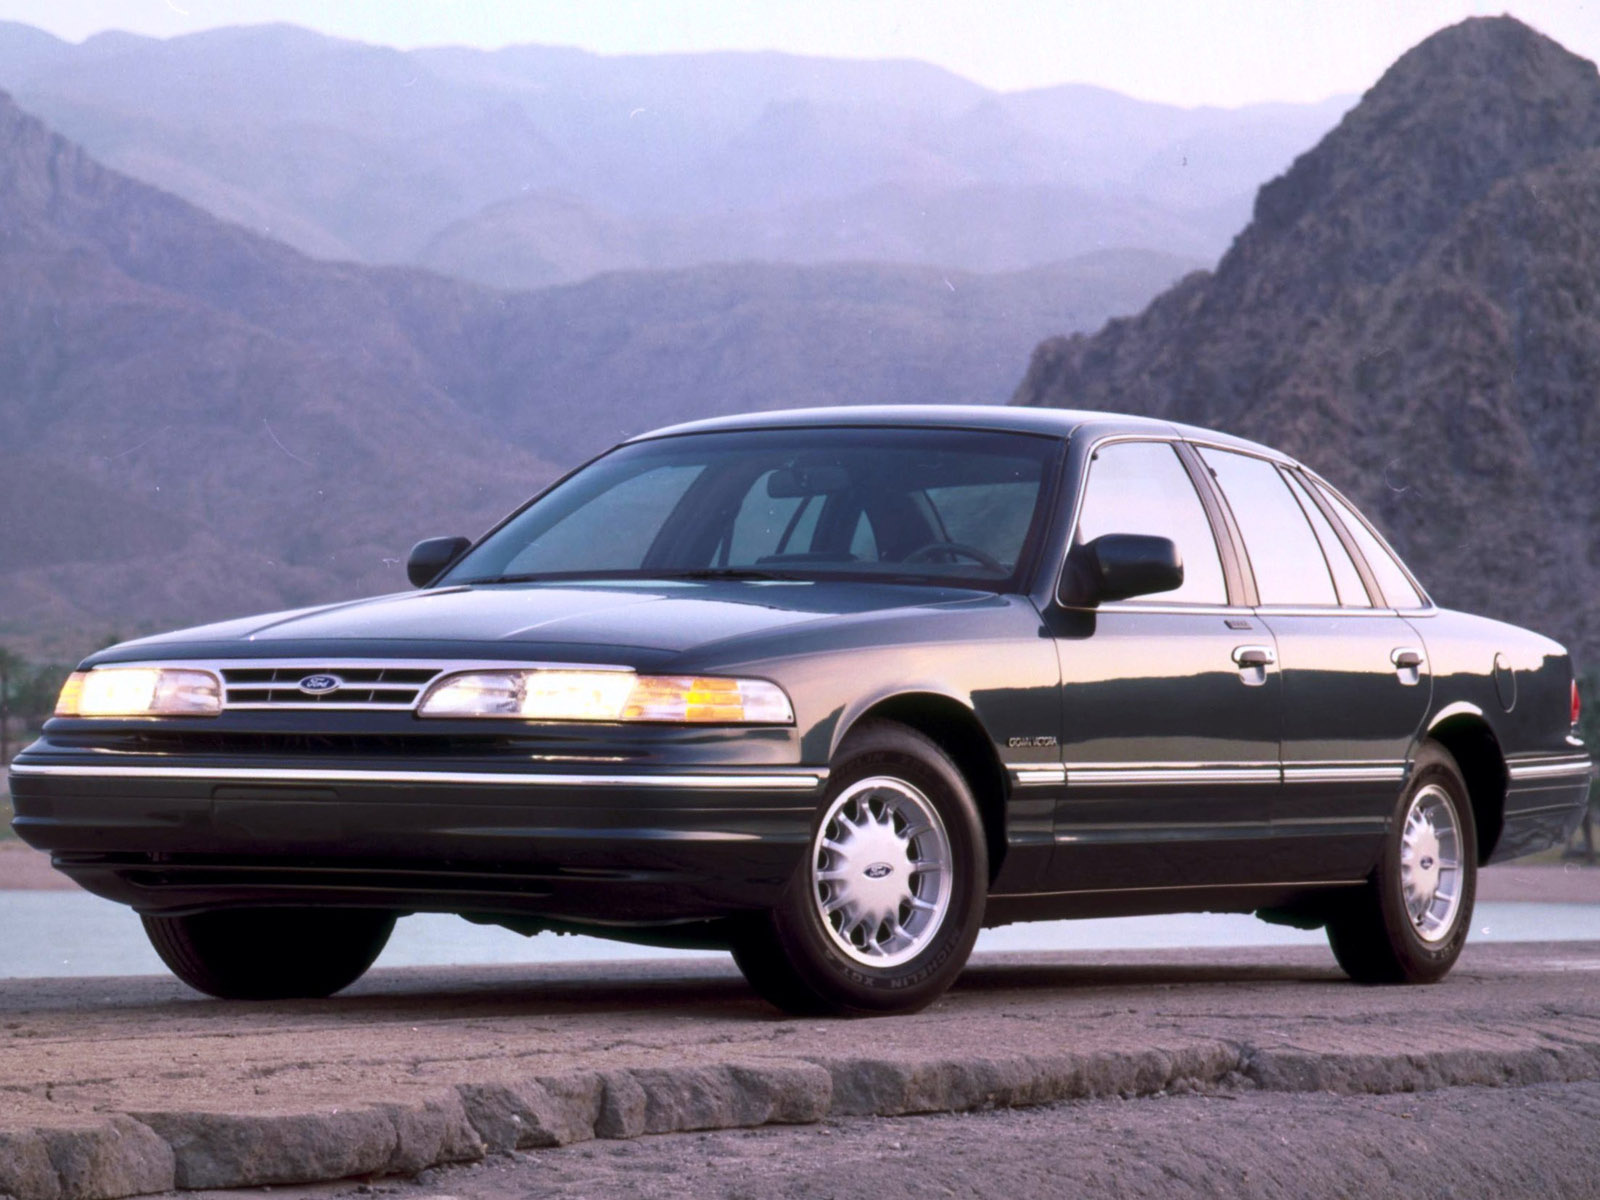 ... Ford Crown Victoria 1997 #3